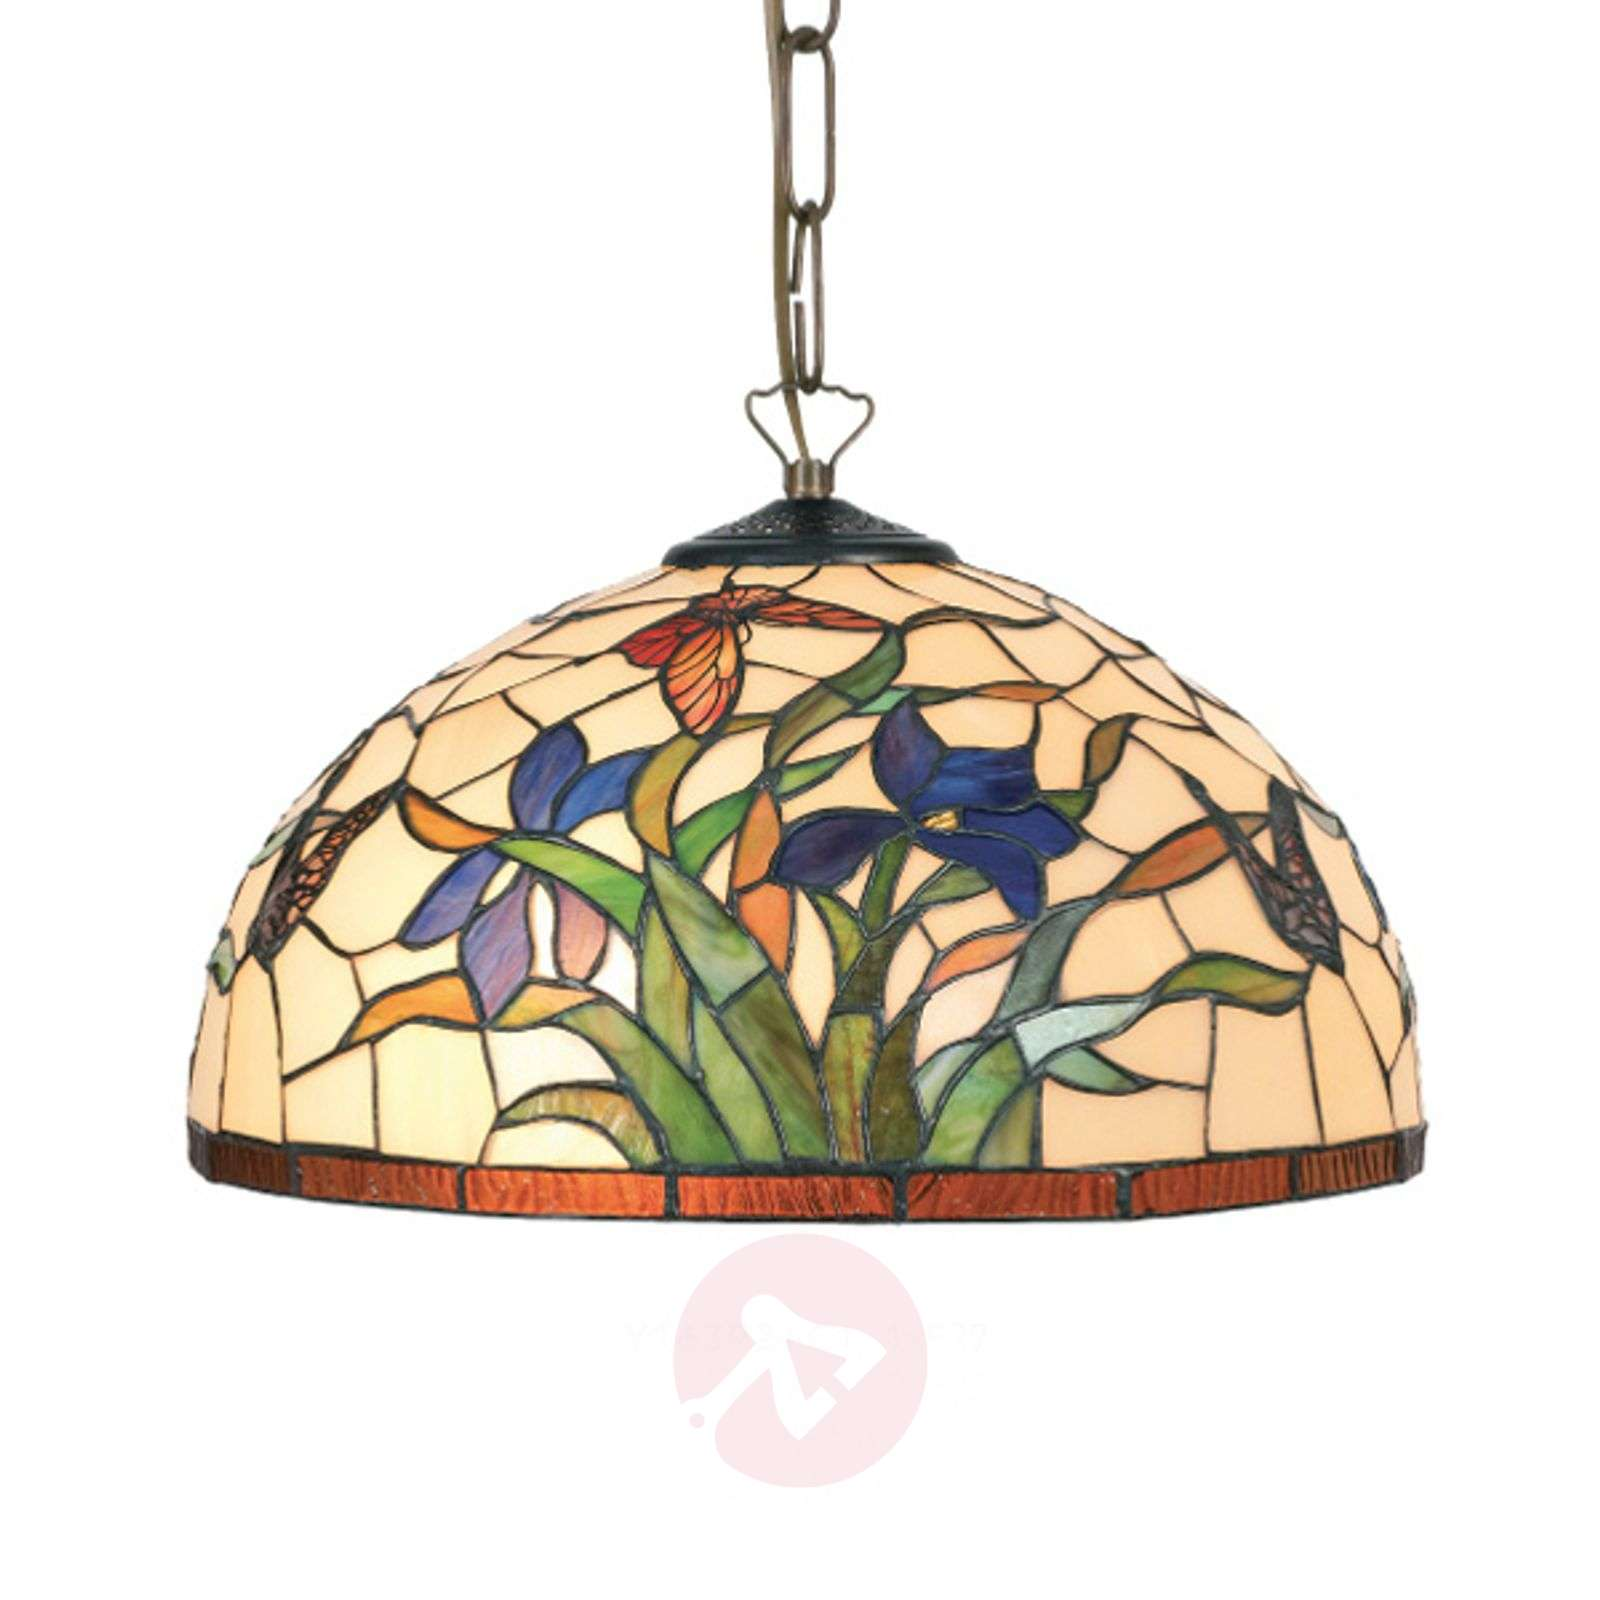 Hanging light Elanda in the Tiffany style-1032163X-01